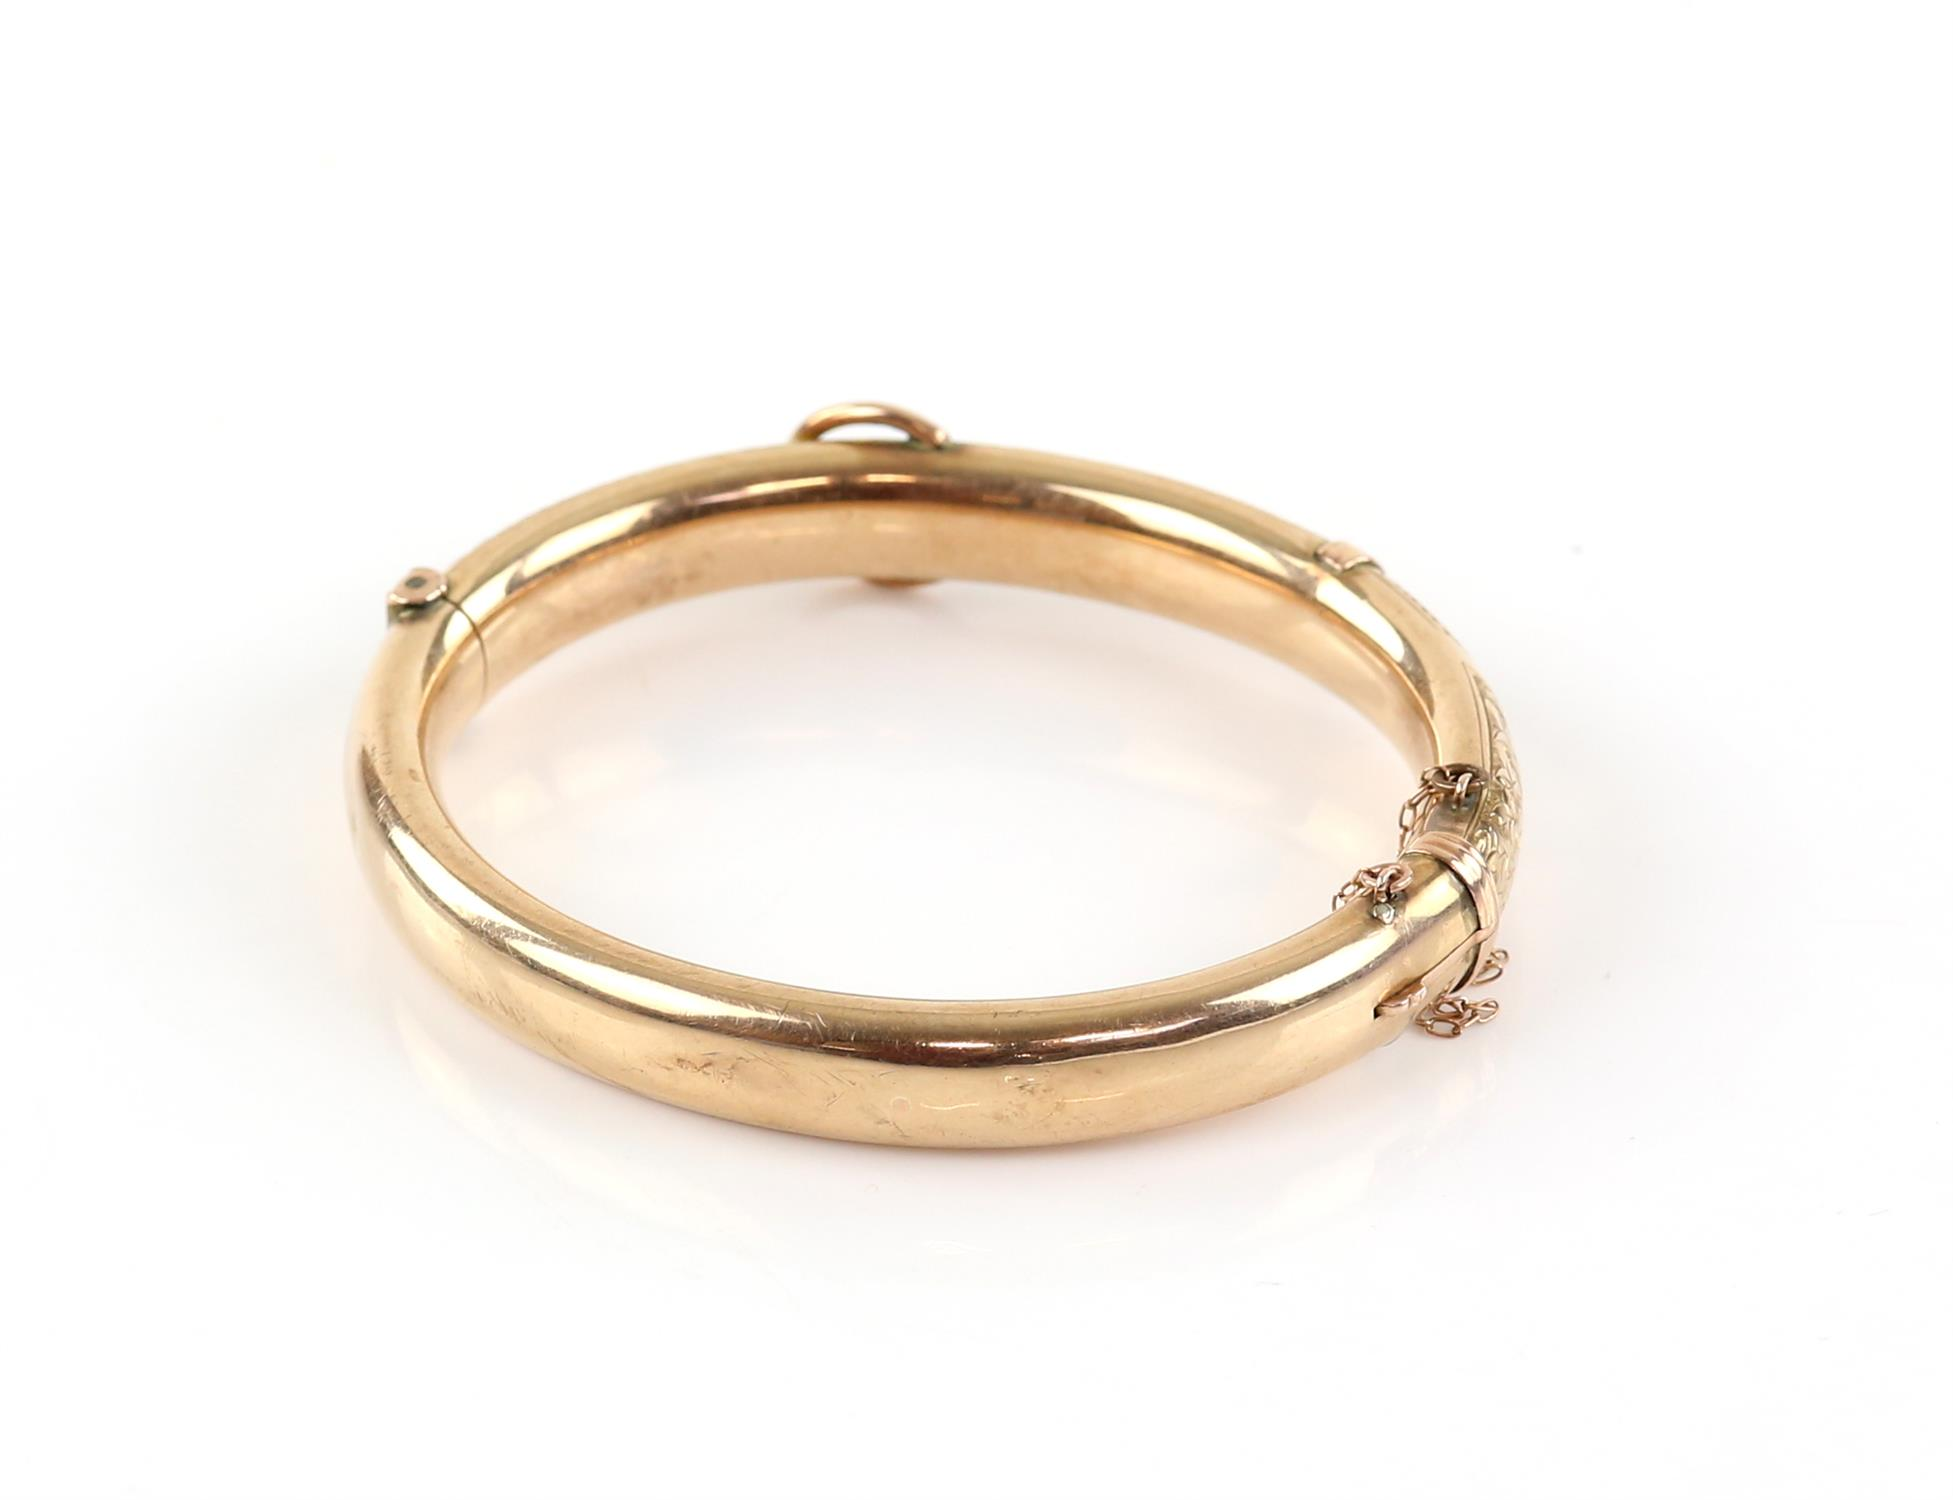 Edwardian gold buckle bangle, engraved with scrolling motif and ivy leaf detailing, - Image 2 of 2